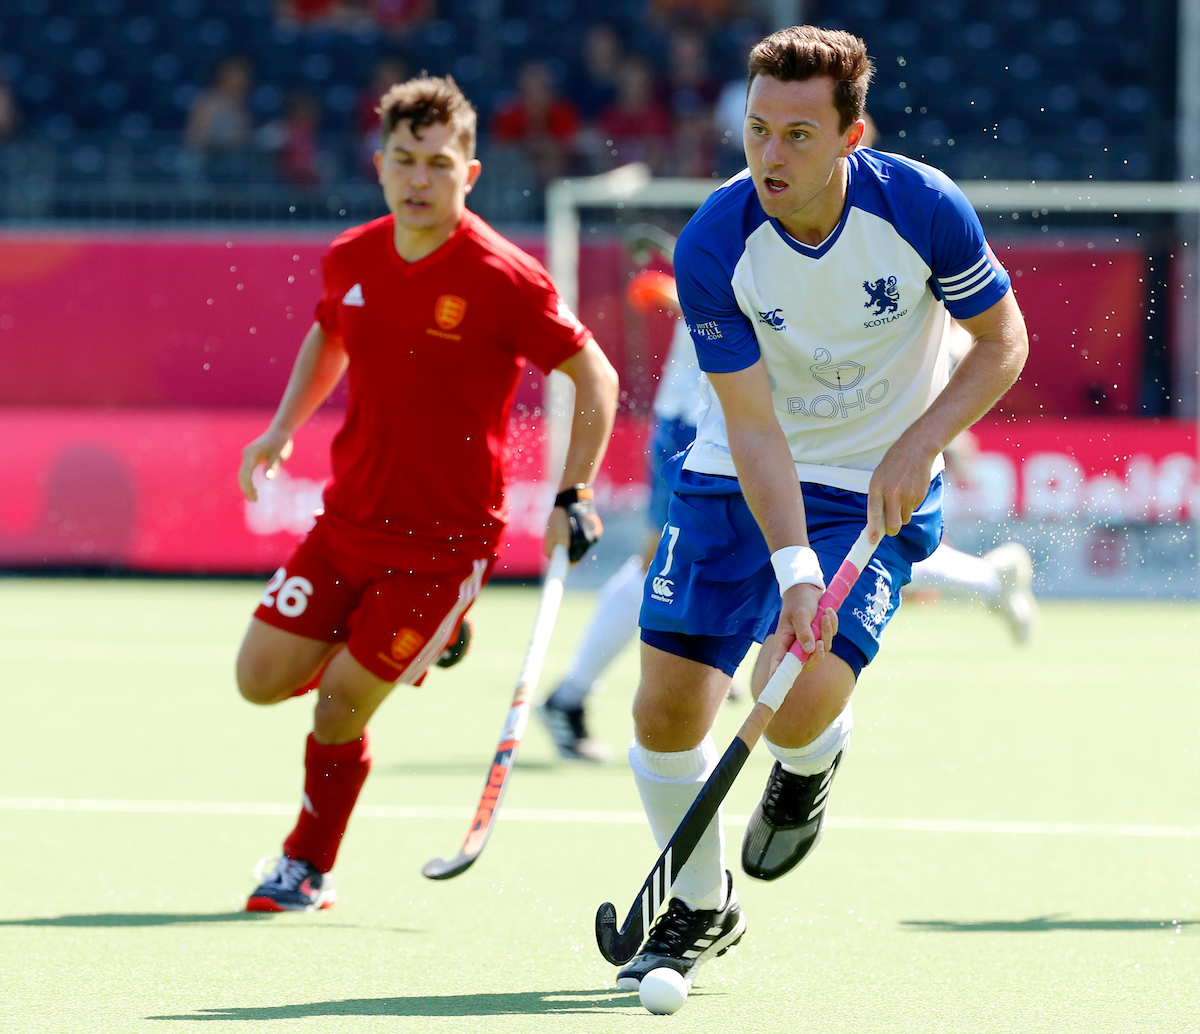 Alan Forsyth - GB Hockey